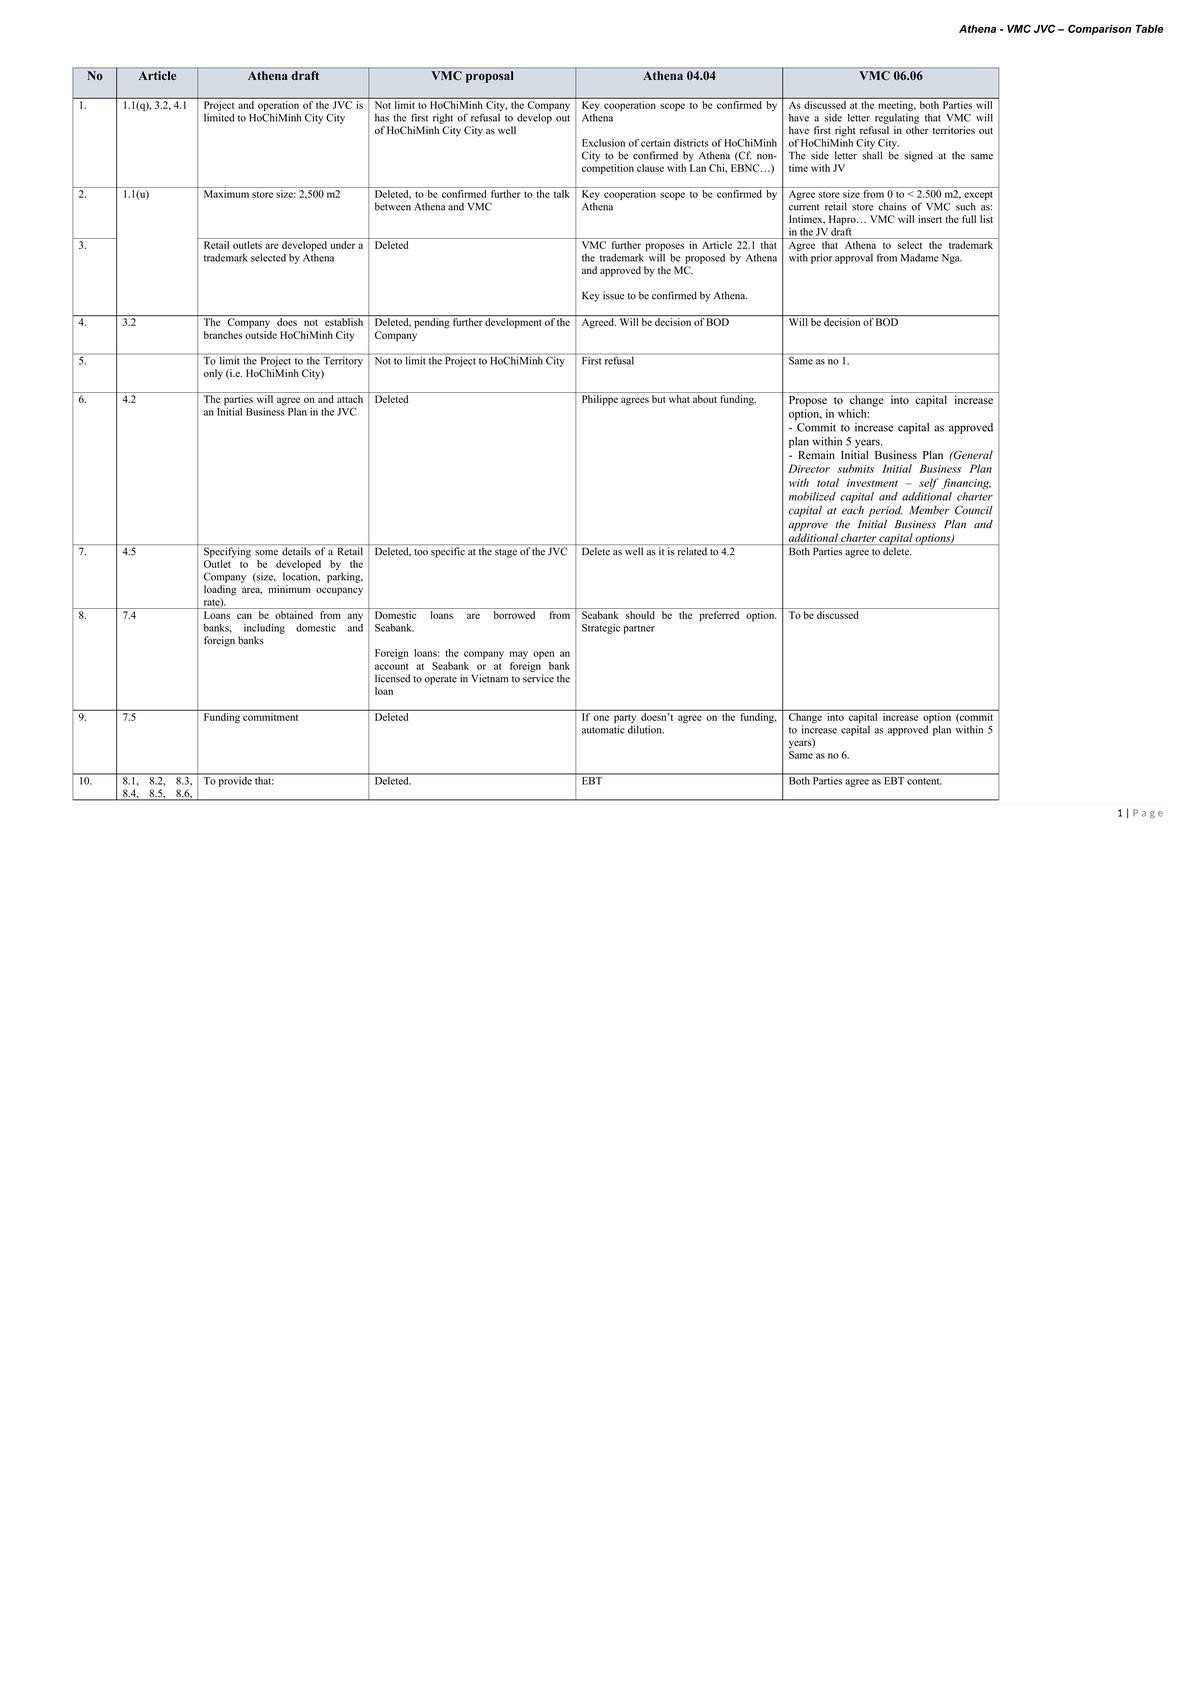 Proposition Comparison Table to Joint Venture Agreement-0